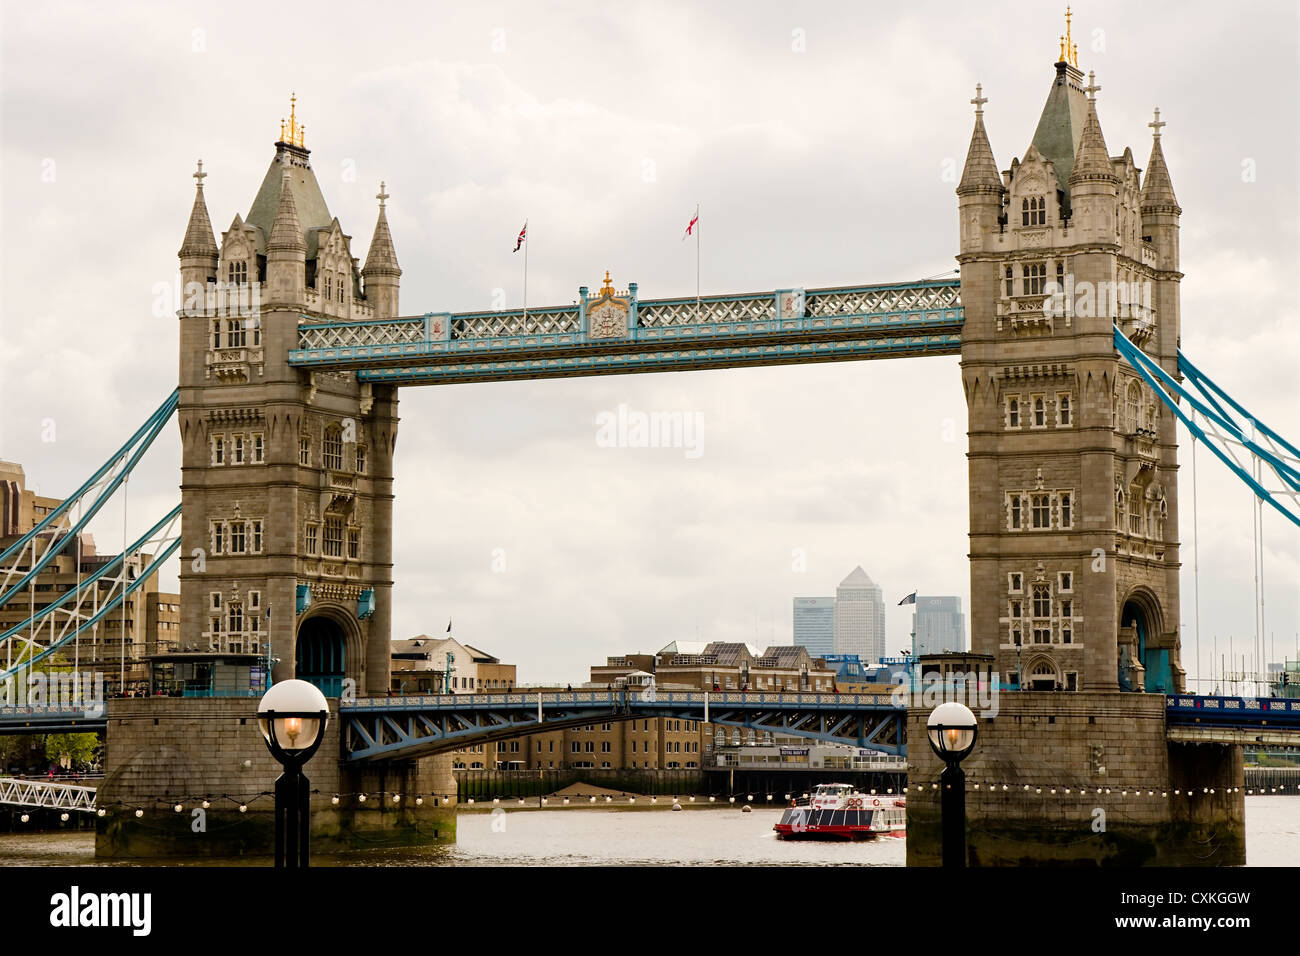 Tower Bridge on a cloudy day - Stock Image